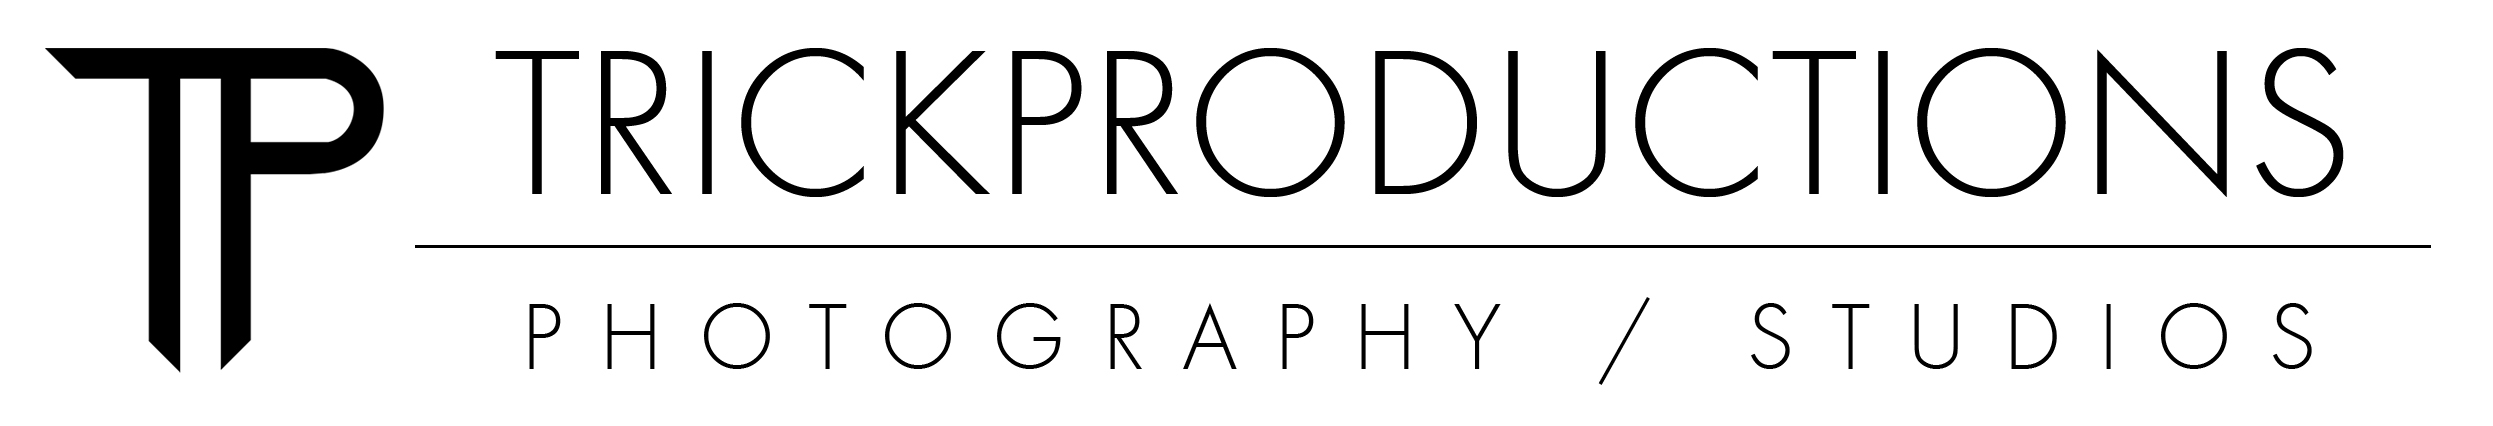 TrickProductions Photography & Studios